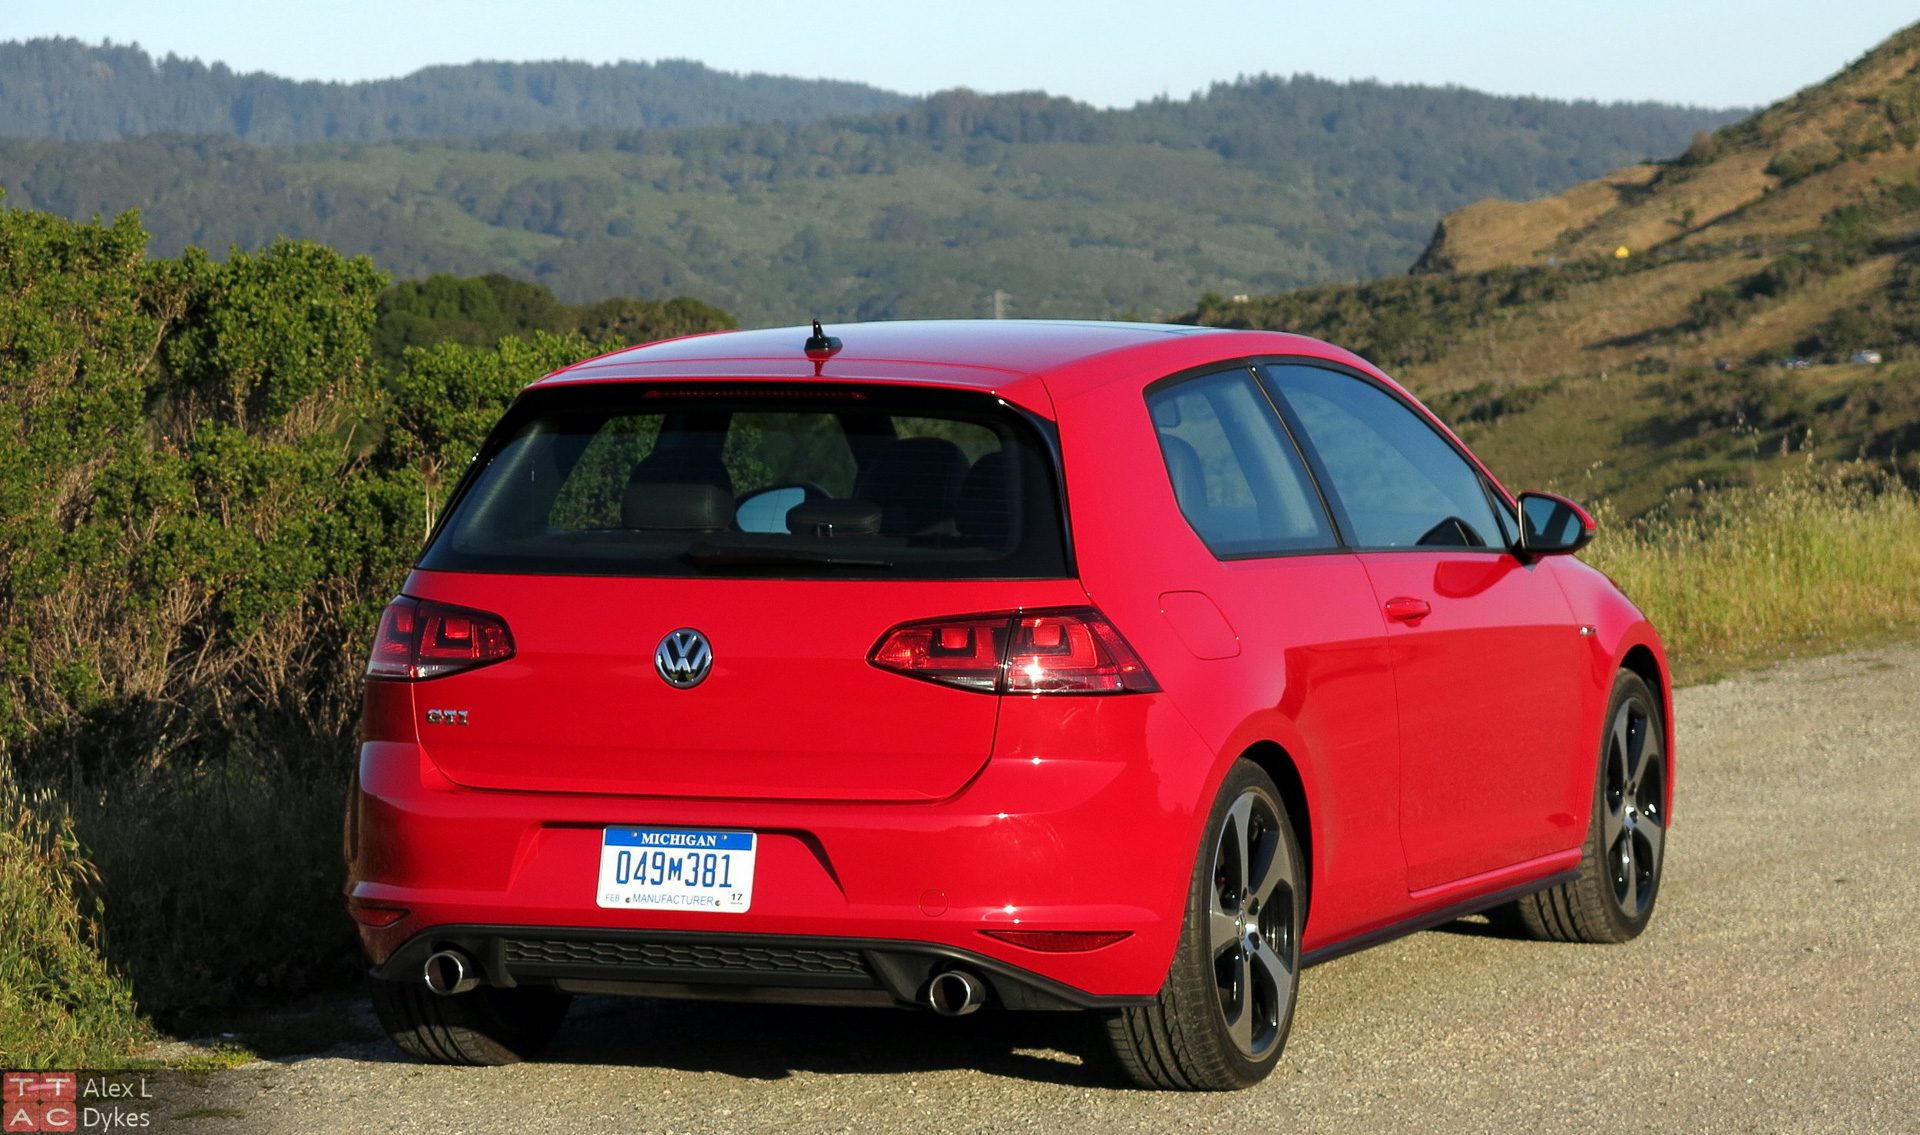 2015 Vw Gti 2 Door Gauges 002 The Truth About Cars